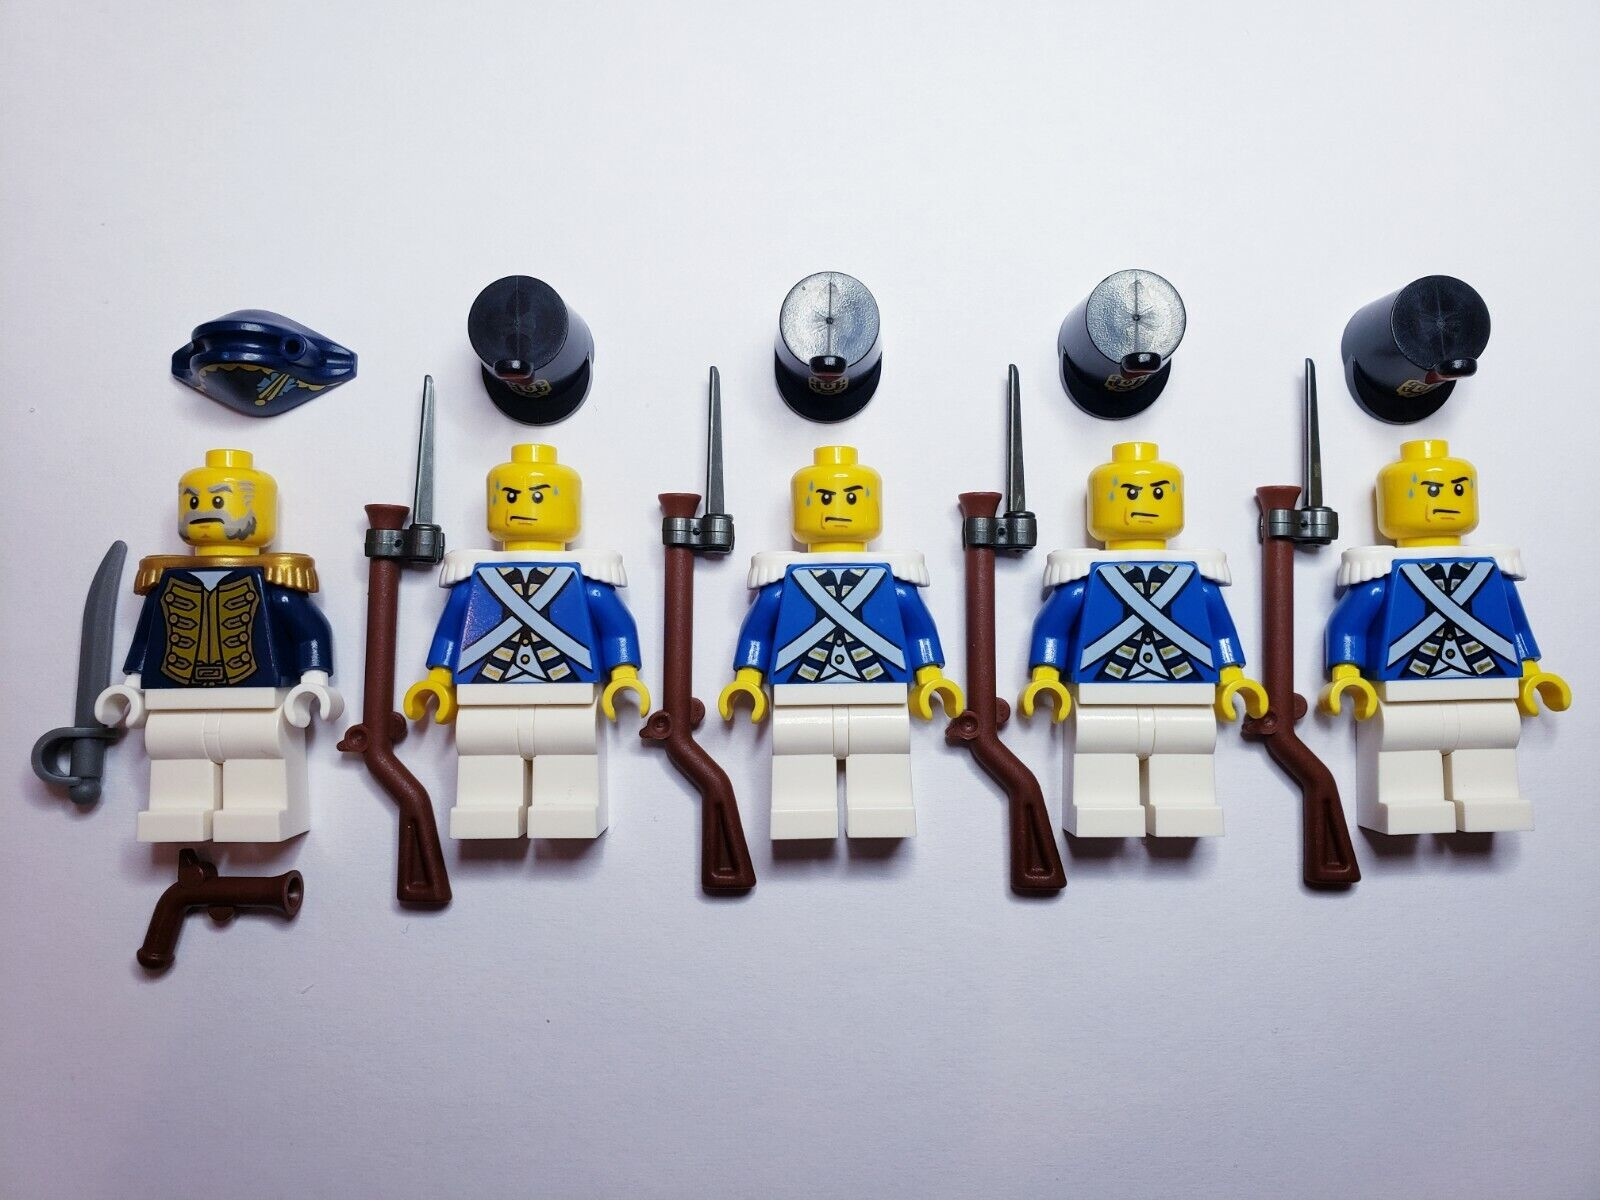 Lego PIRATE Imperial Guard blueECOAT Soldiers Governor MINIFIGS MINIFIGS MINIFIGS Musket + Bayonet dcc44d